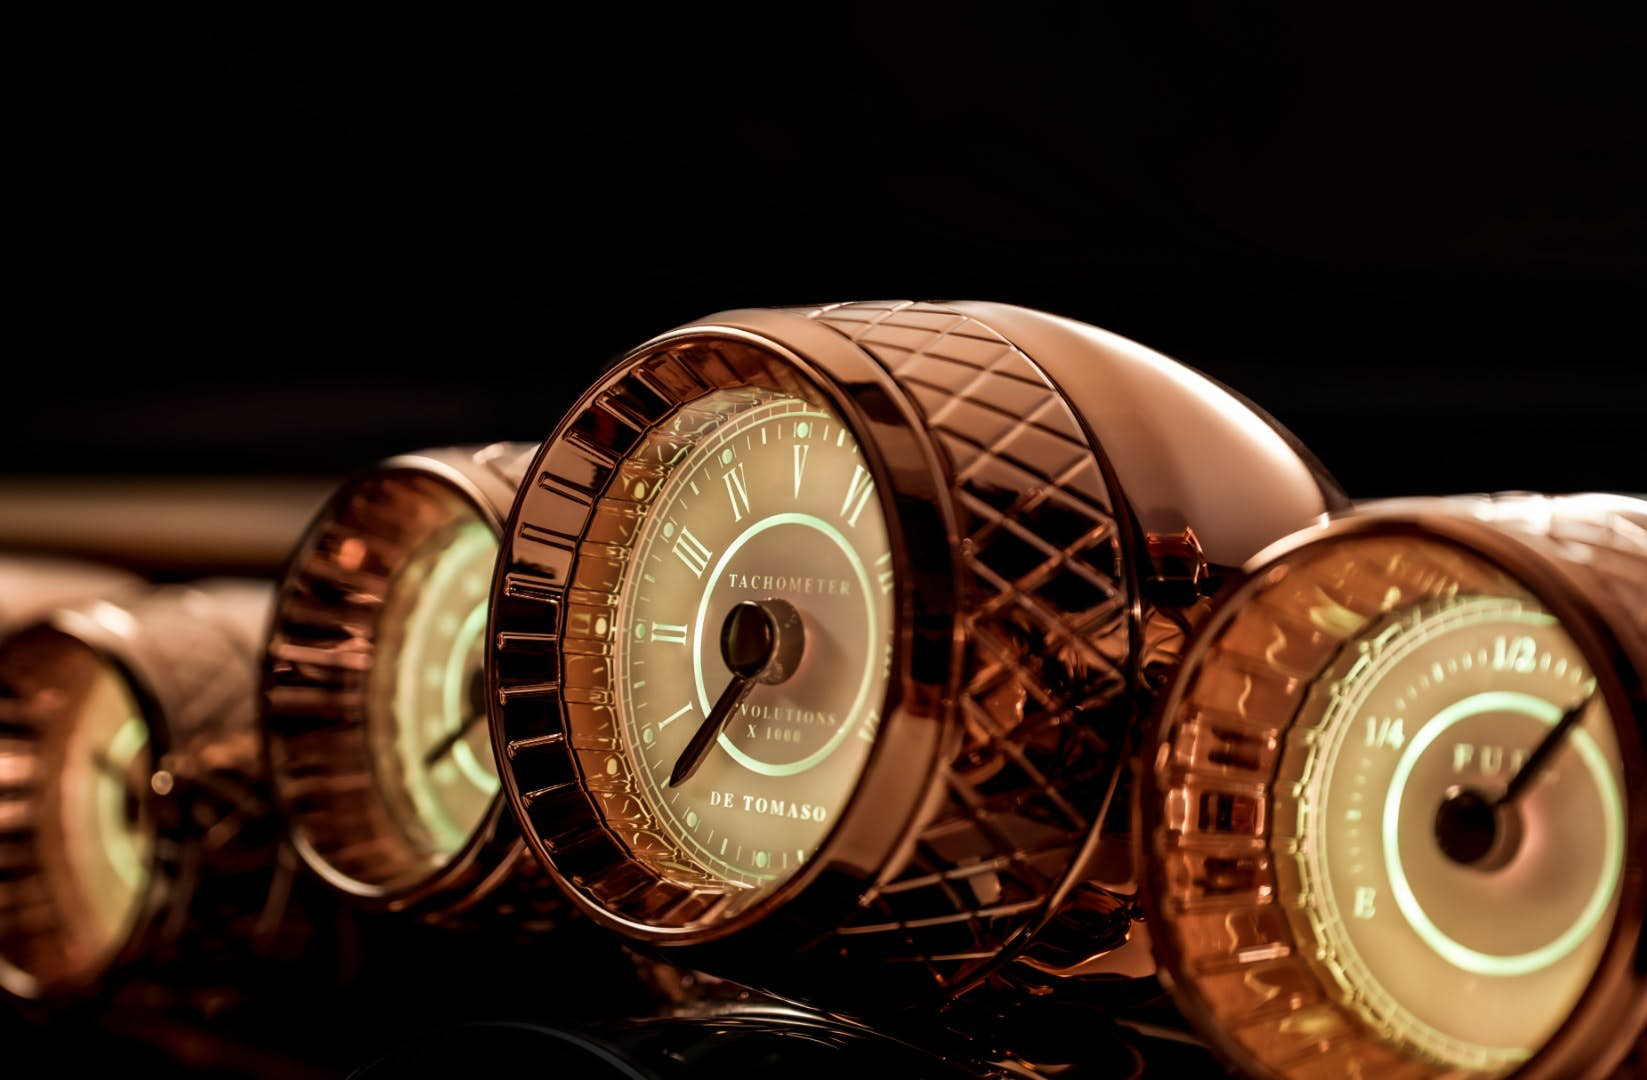 Beautifully detailed retro gauges inside the De Tomaso P72